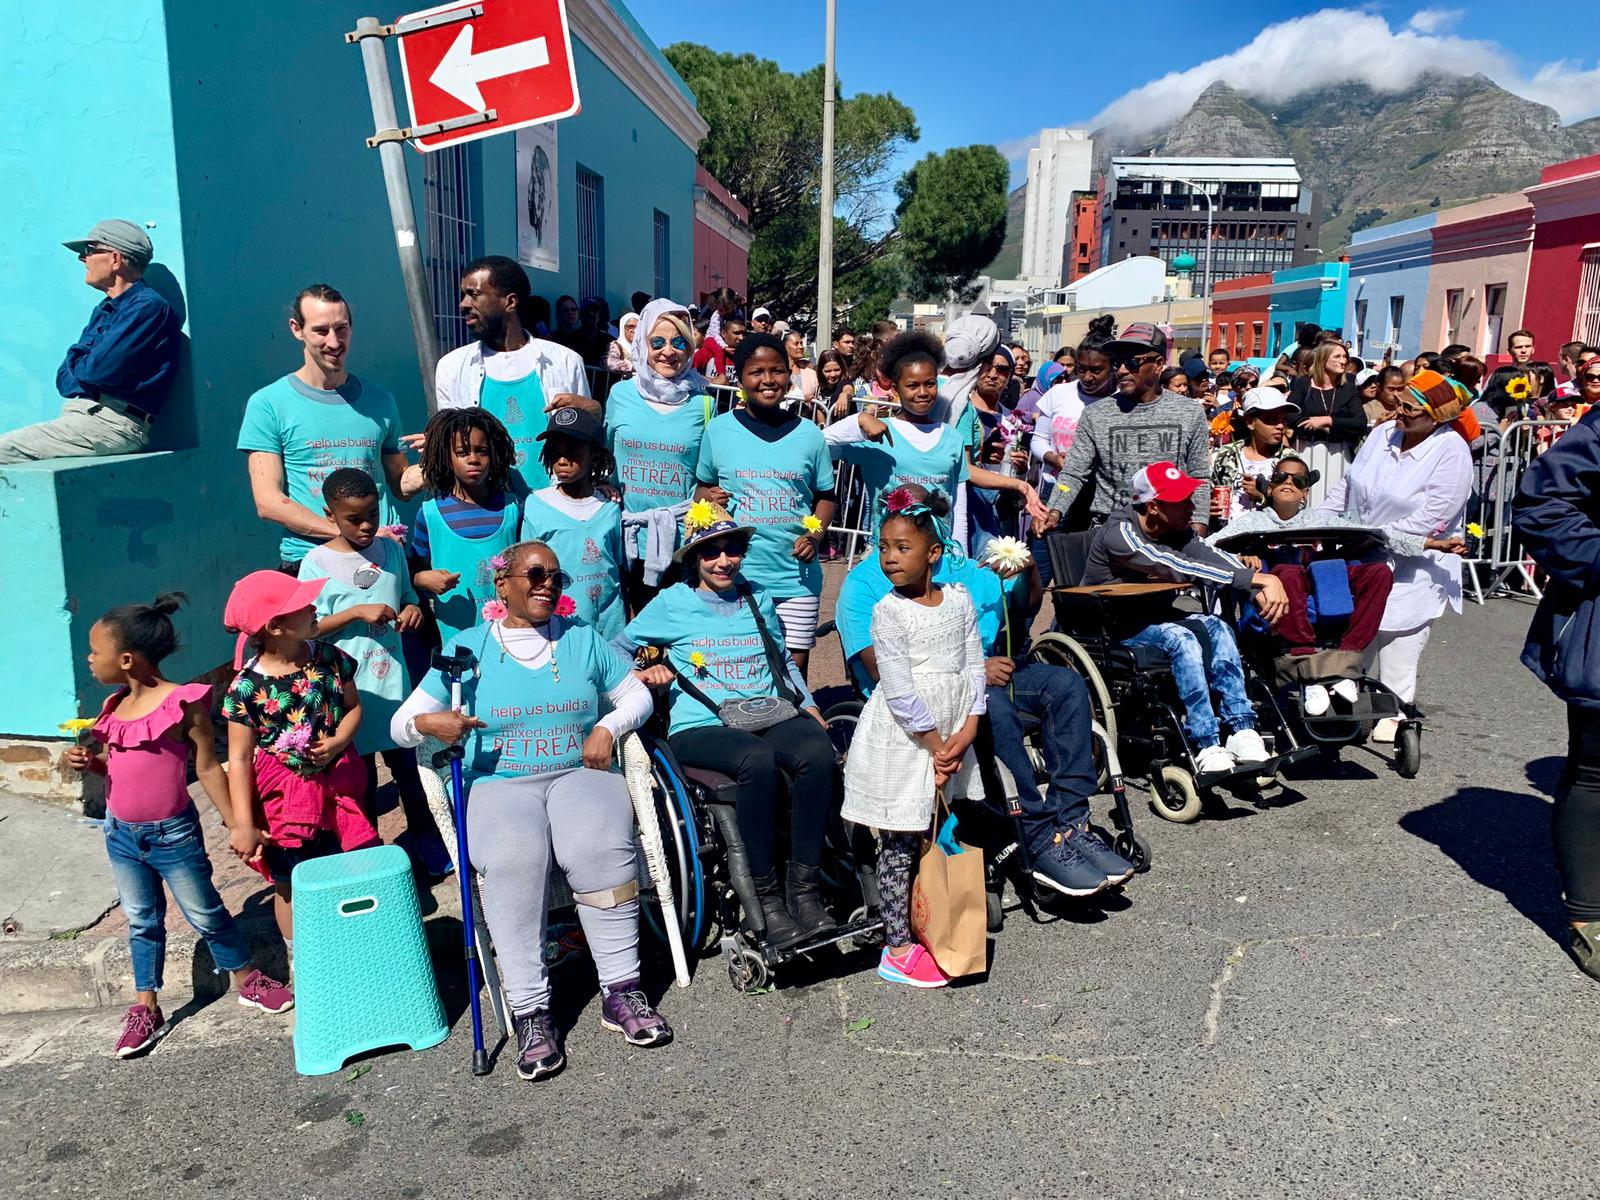 Members of the Brave group wait to meet Prince Harry and Meghan in Cape Town's Bo-Kaap neighborhood.